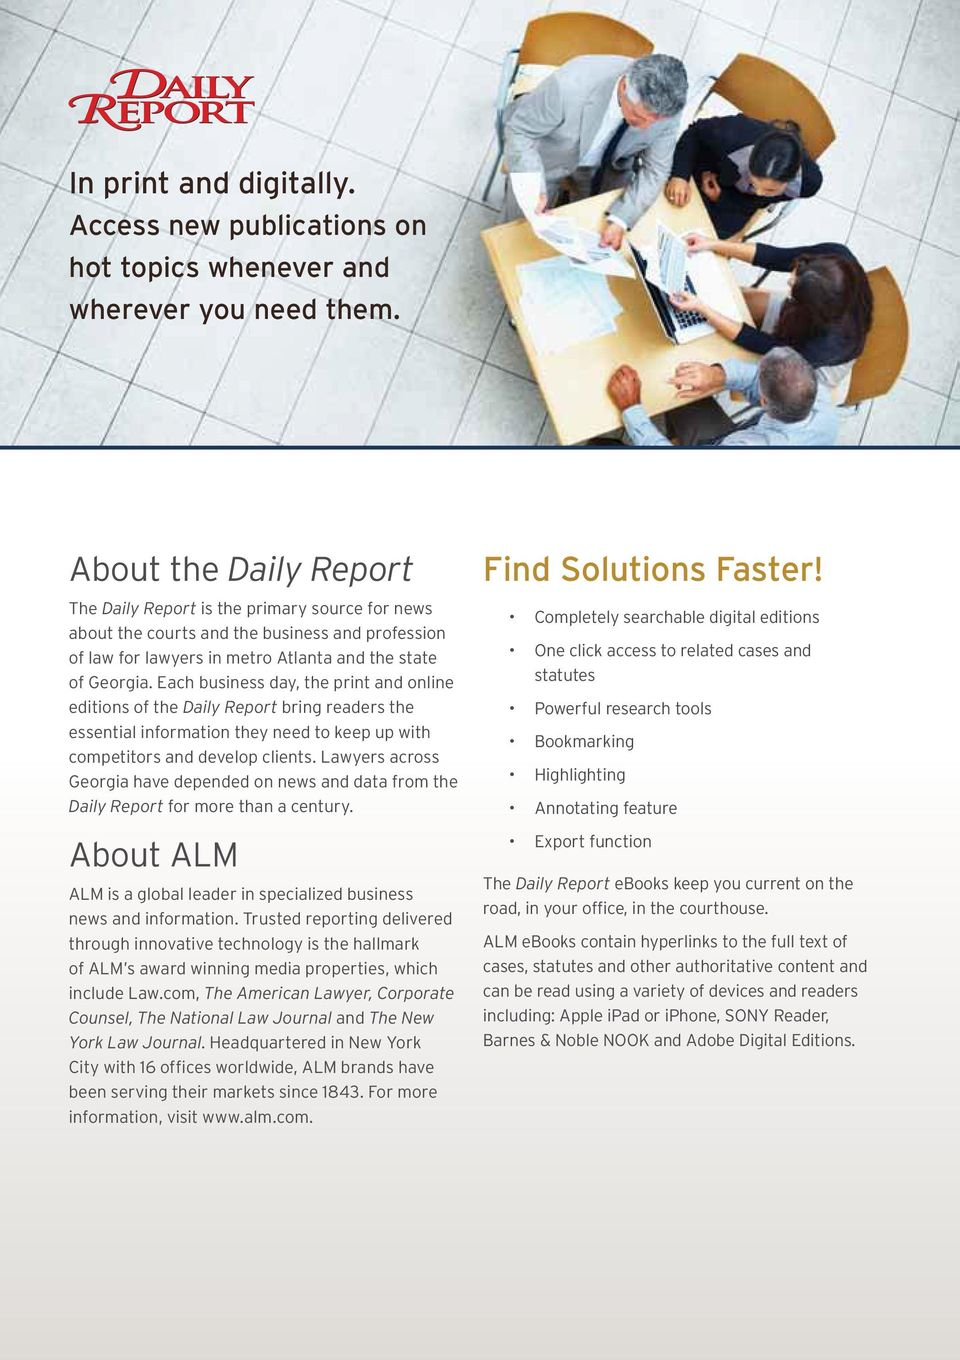 Each business day, the print and online editions of the Daily Report bring readers the essential information they need to keep up with competitors and develop clients.